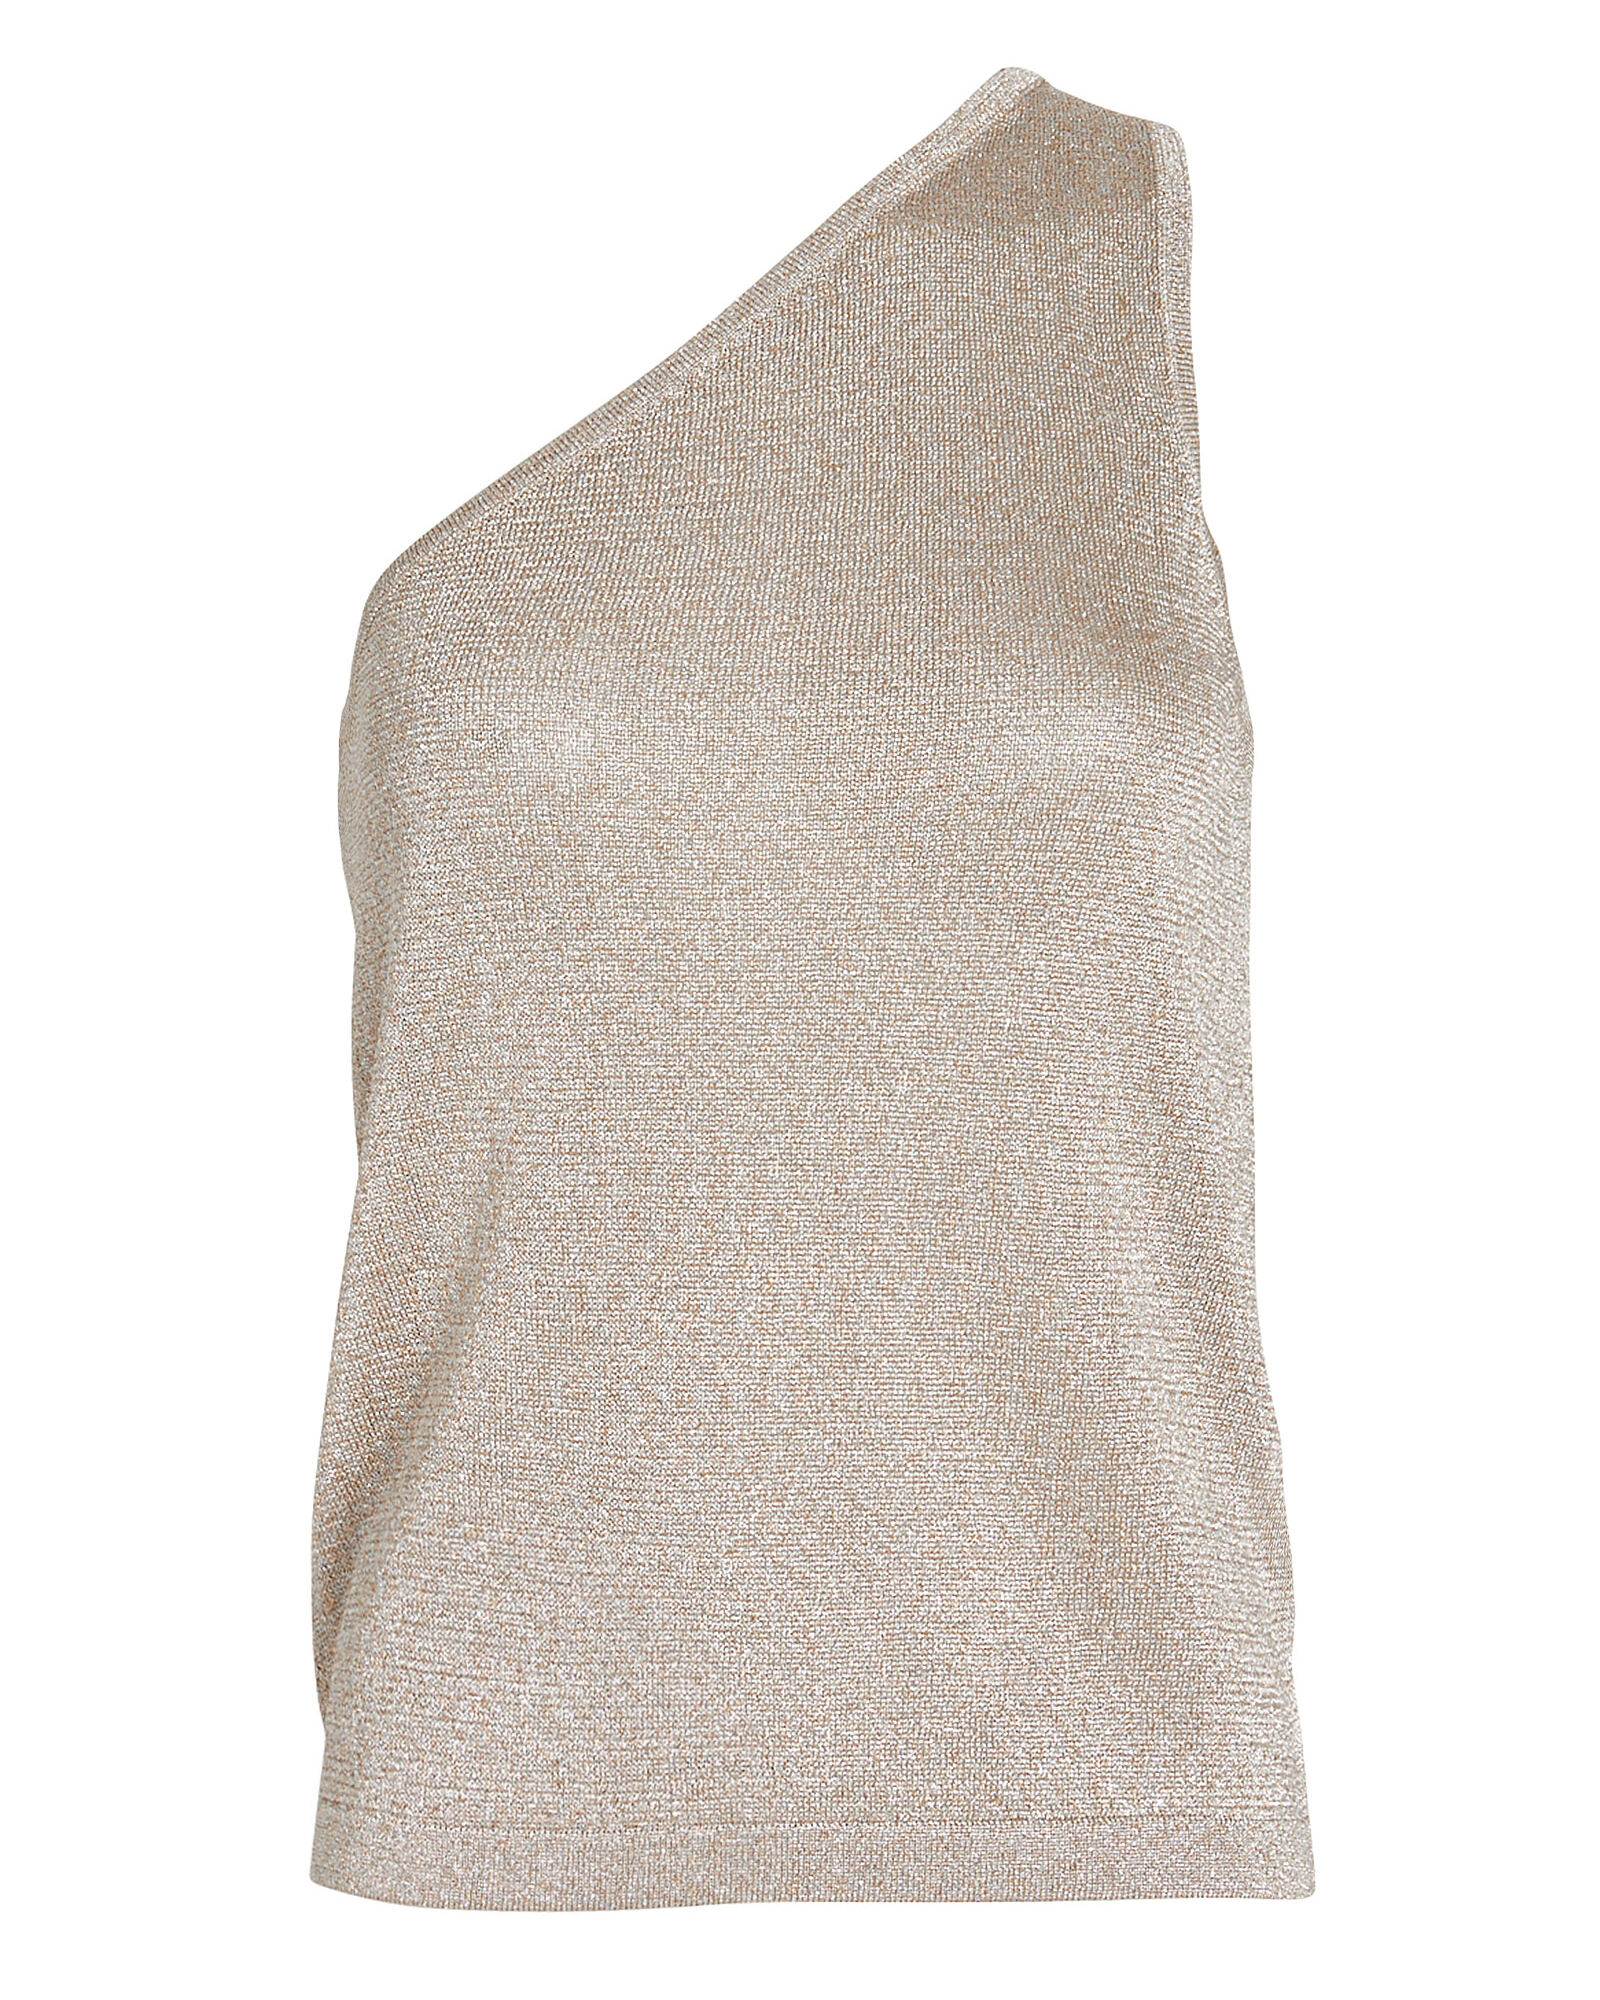 Lurex One-Shoulder Knit Top, GOLD, hi-res